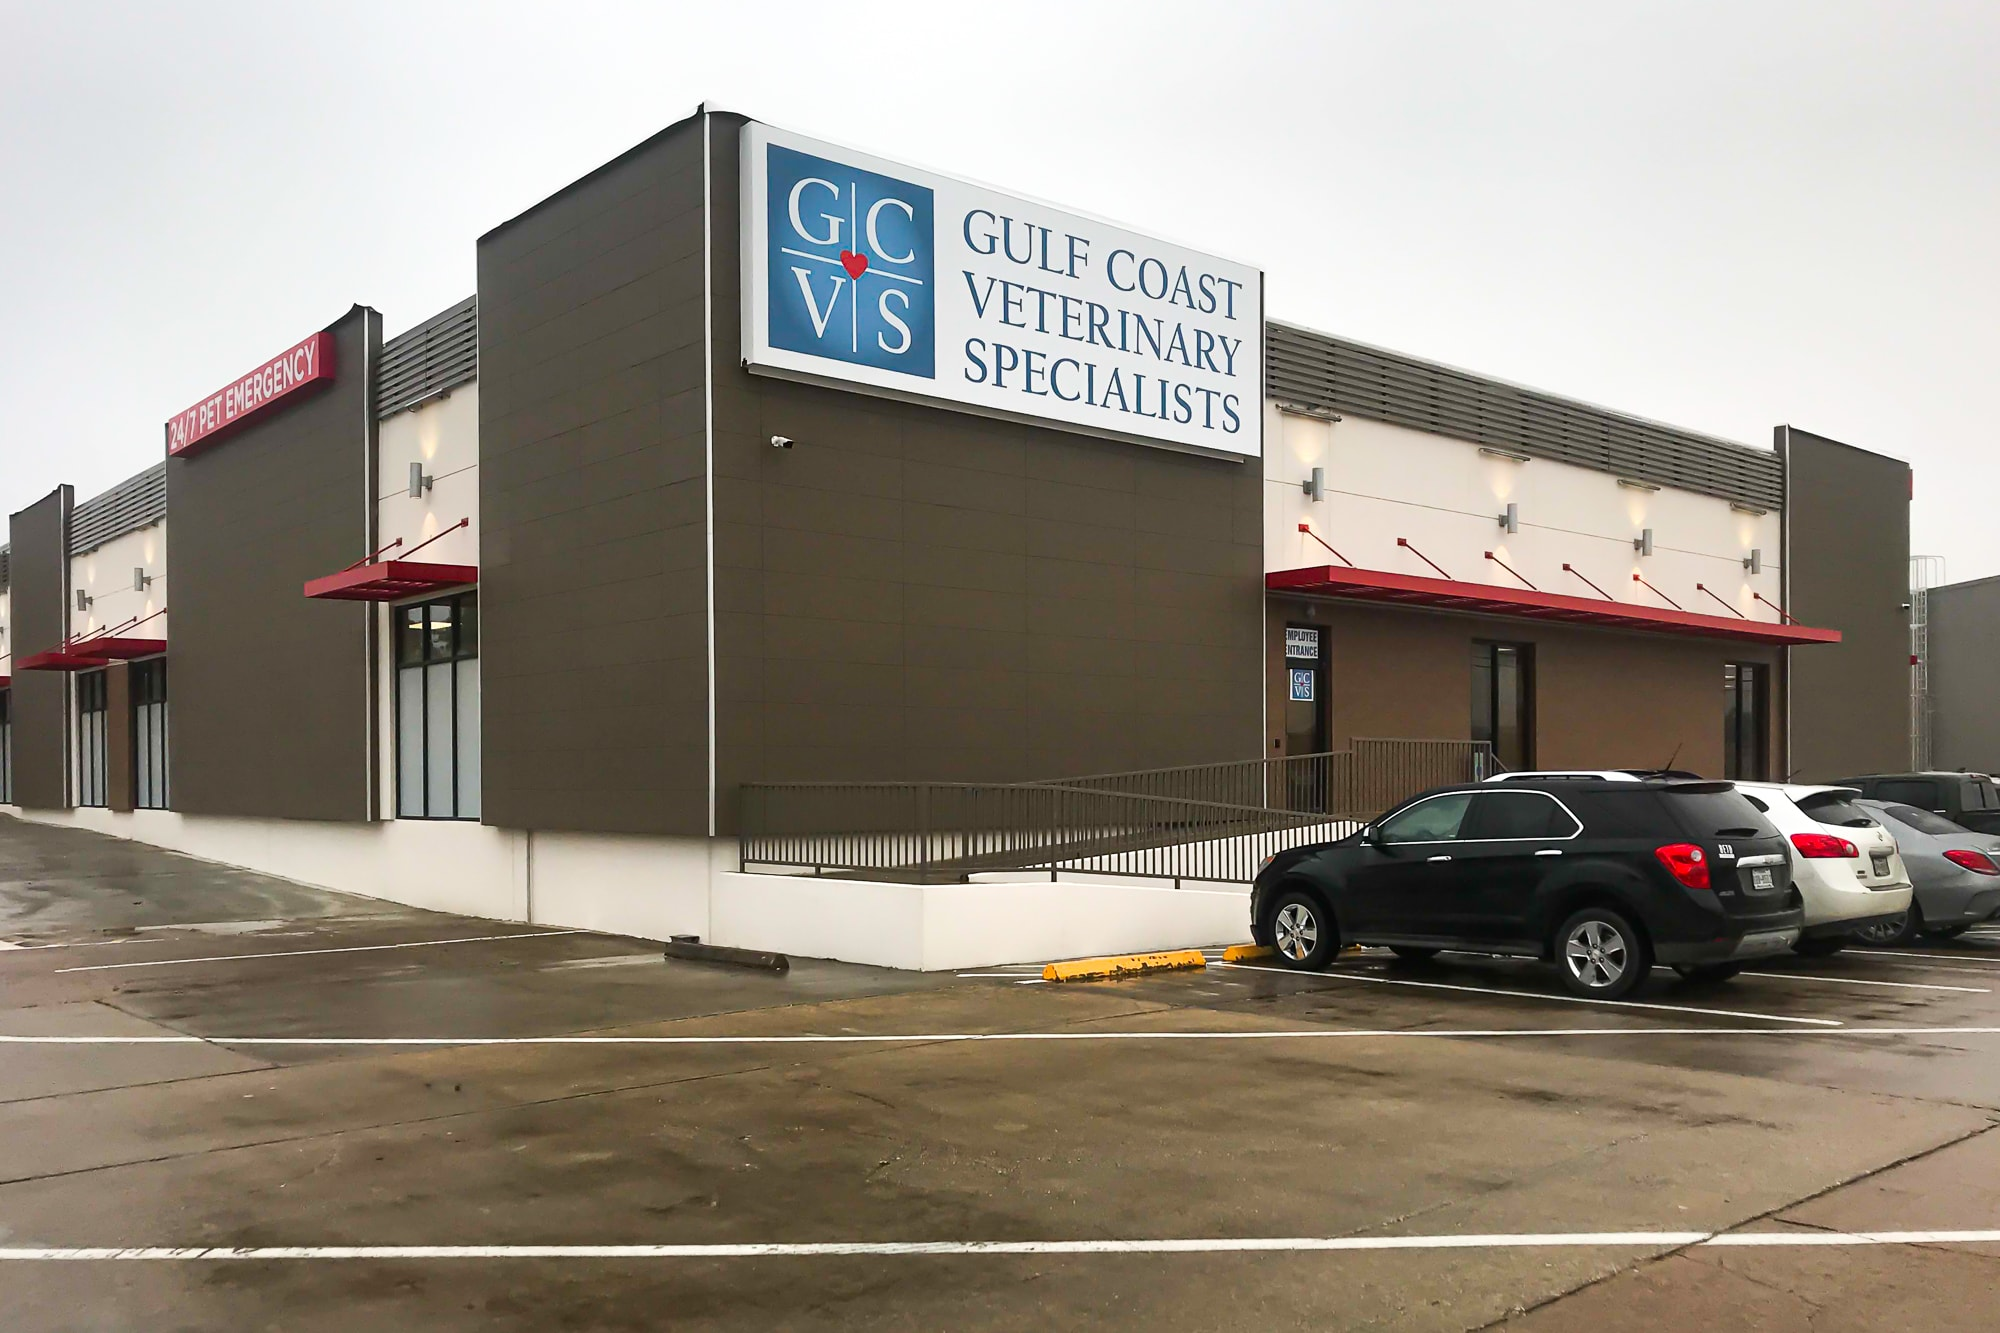 Awnex Featured Project -Architectural Aluminum Wall Screens - Gulf Coast Veterinary Specialists - Houston, Texas